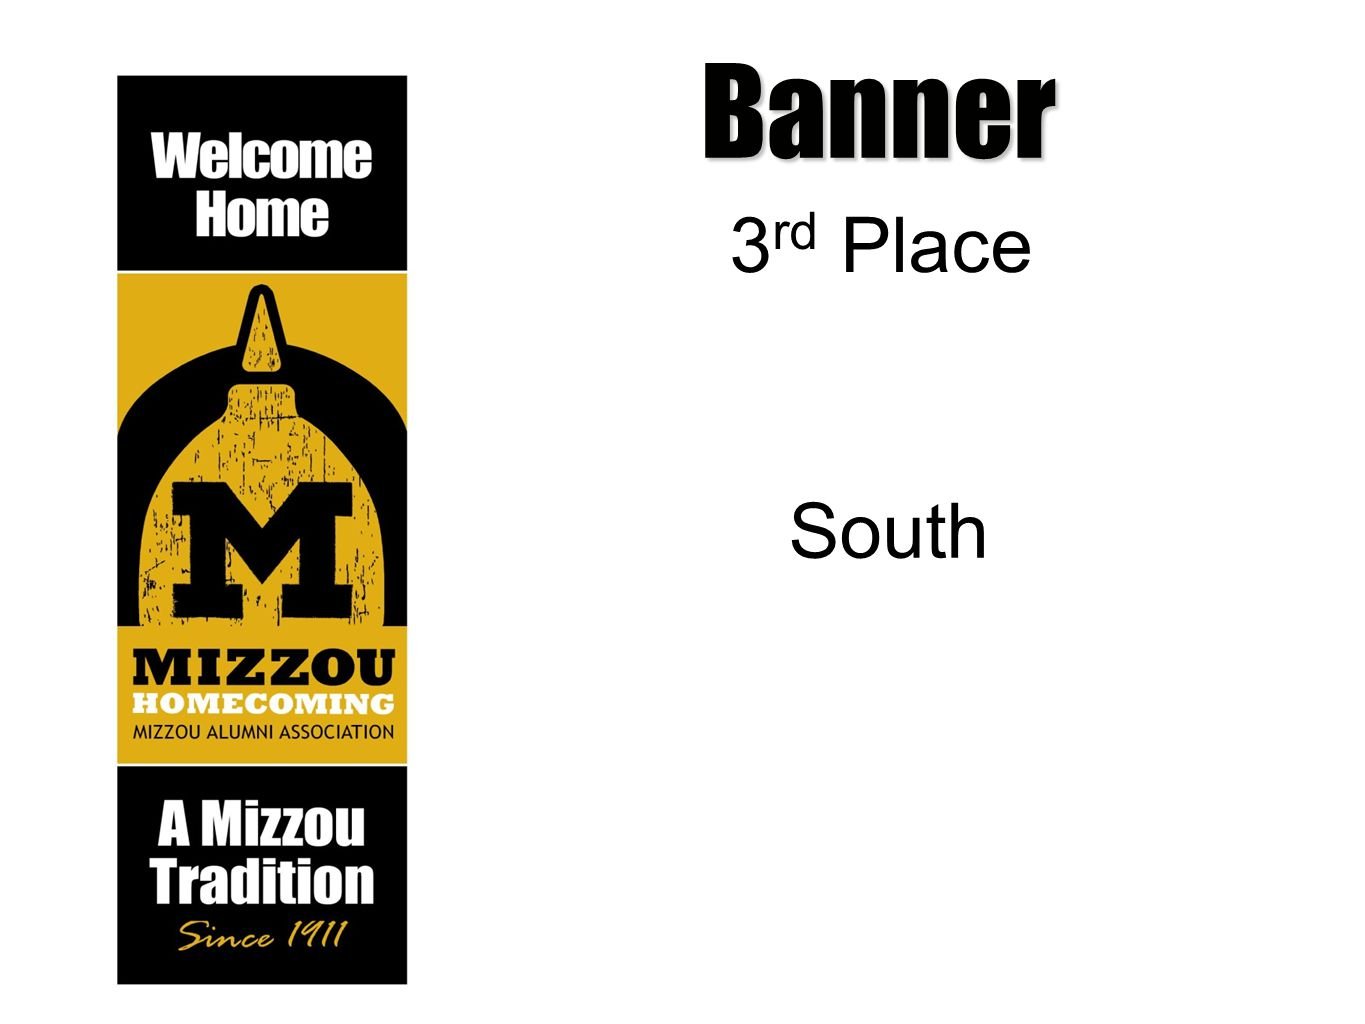 Banner 3 rd Place South